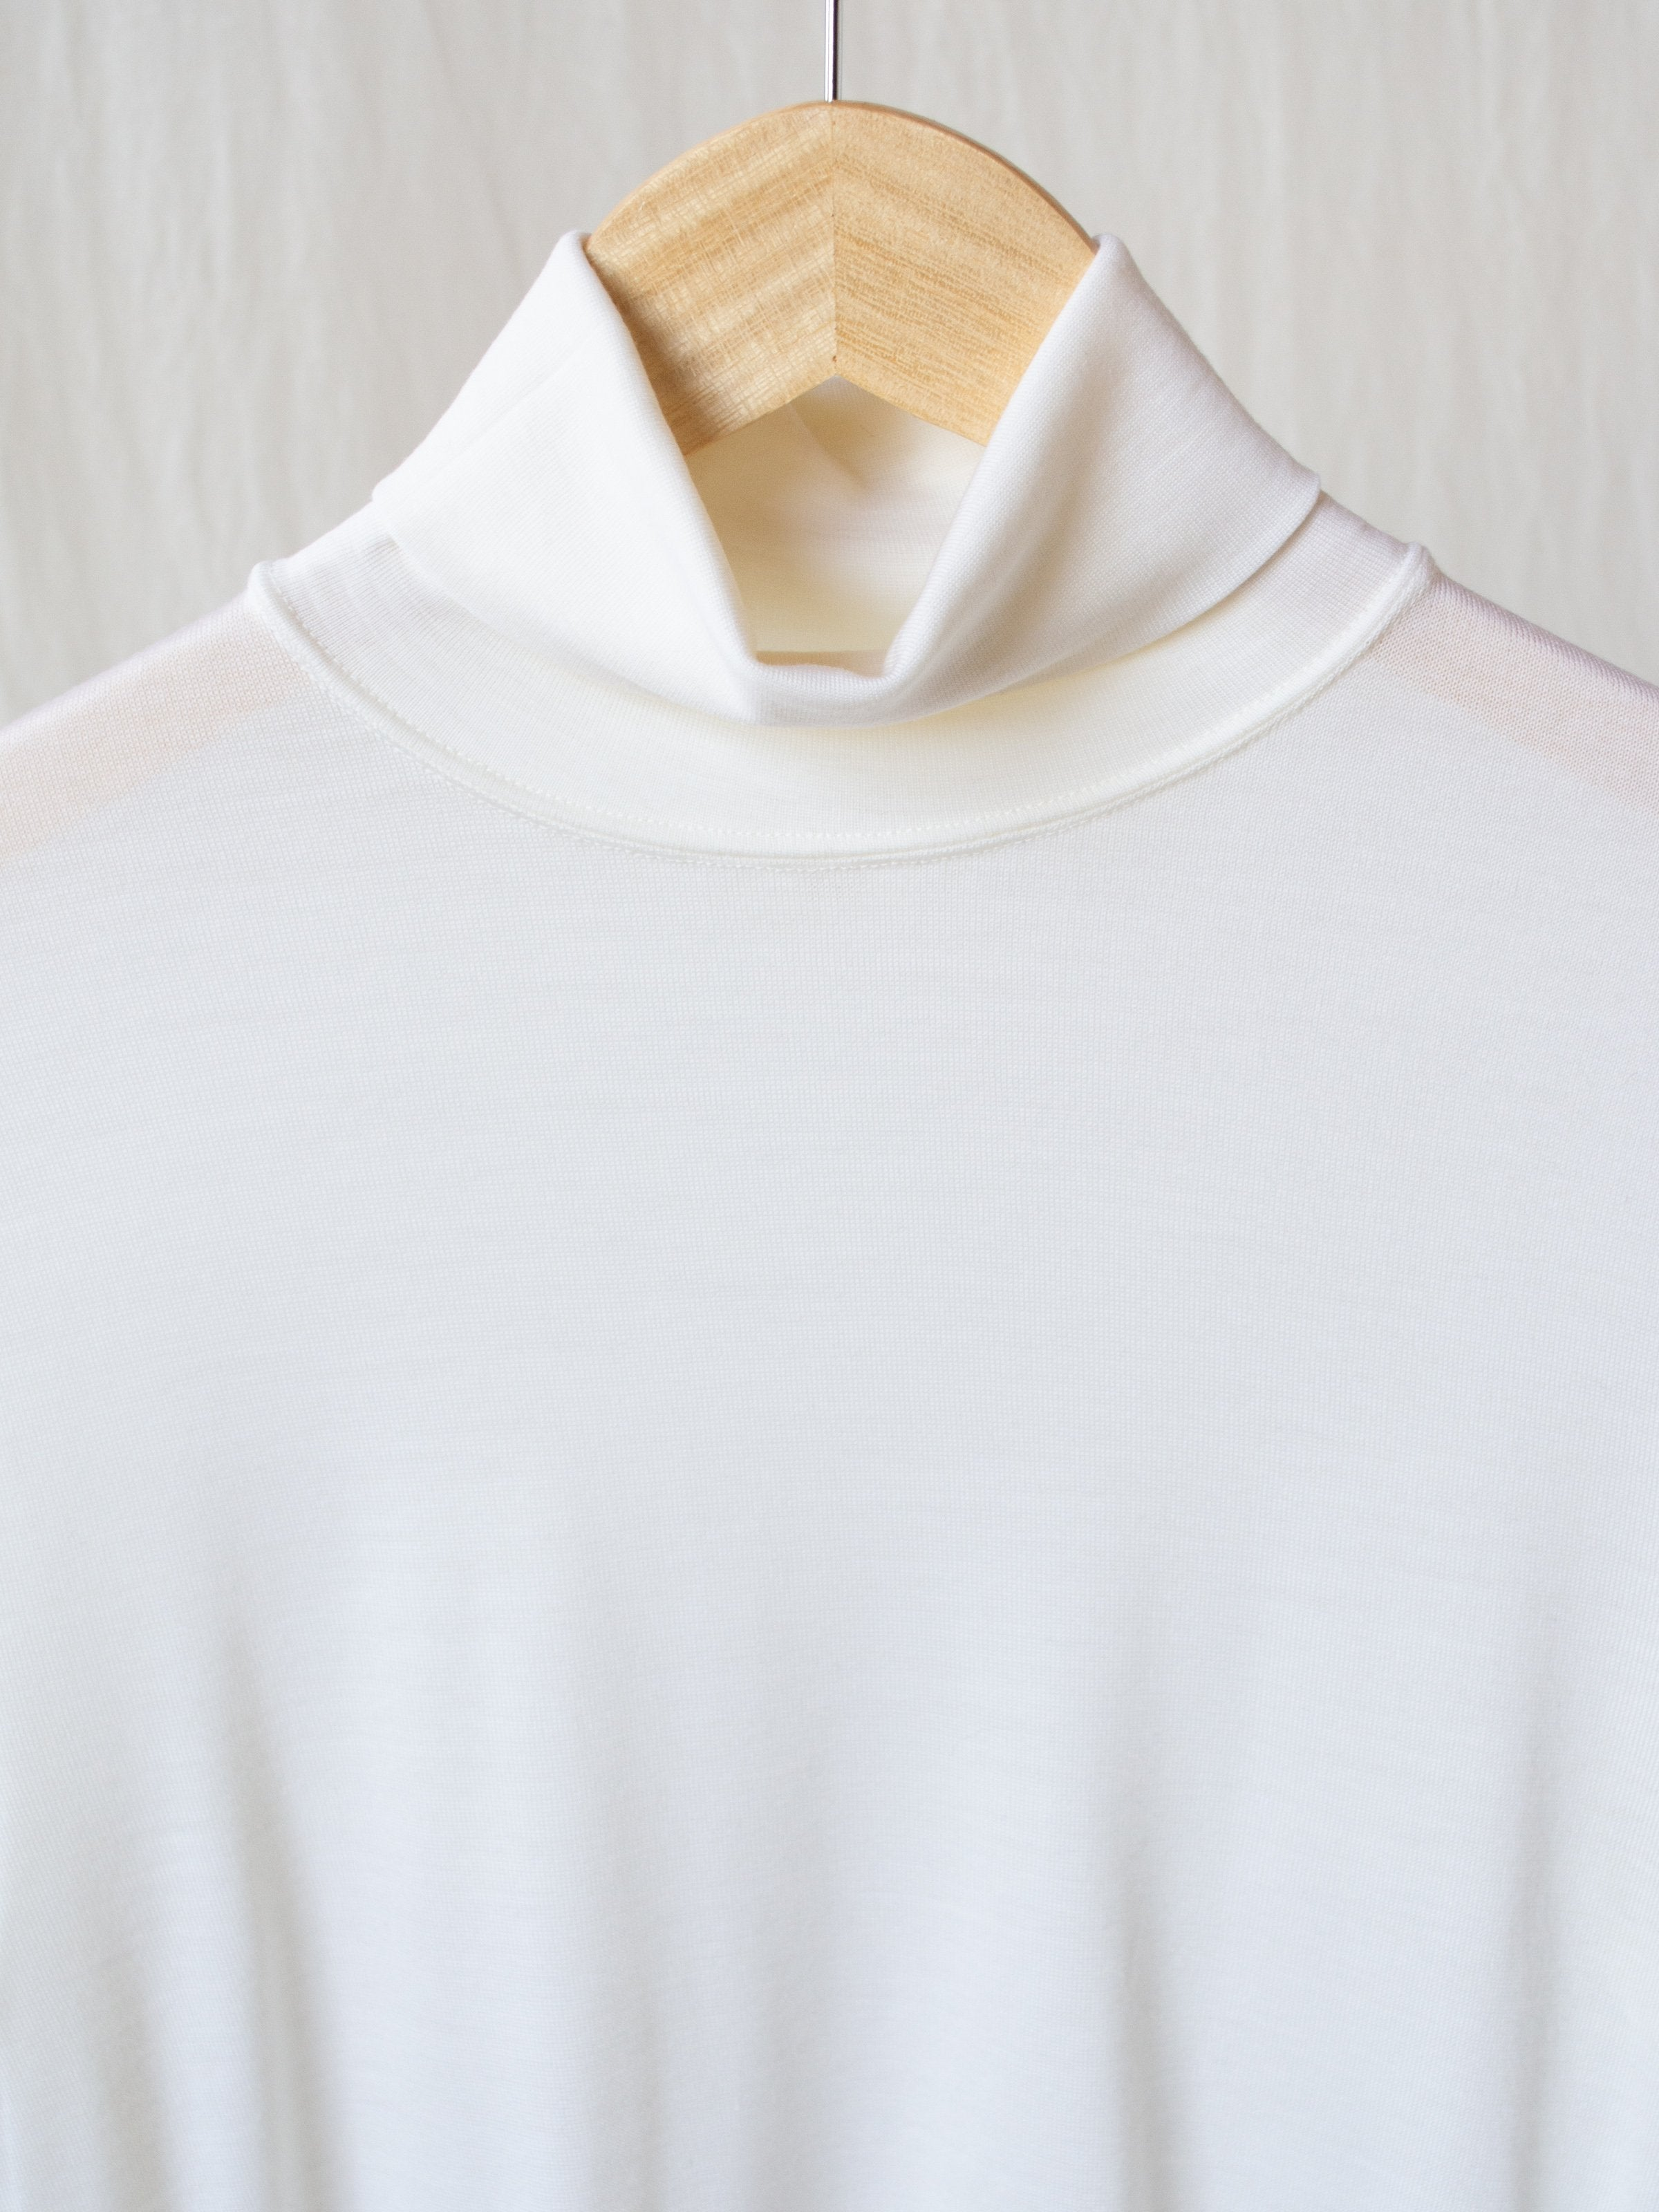 Namu Shop - Phlannel Wool Turtleneck T-Shirt - White